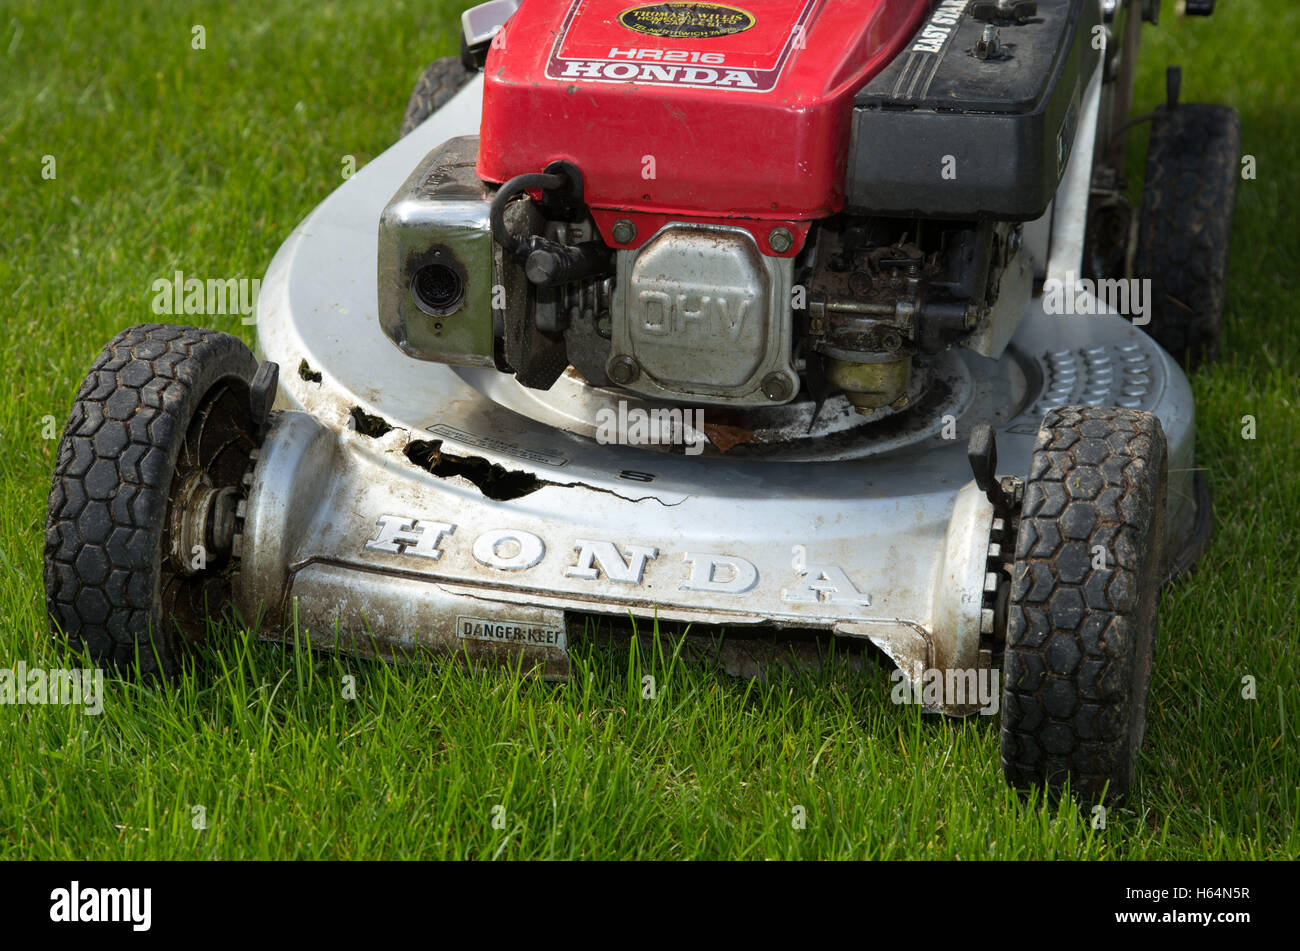 Lawnmower damaged by stones thrown up by the rotor - Stock Image